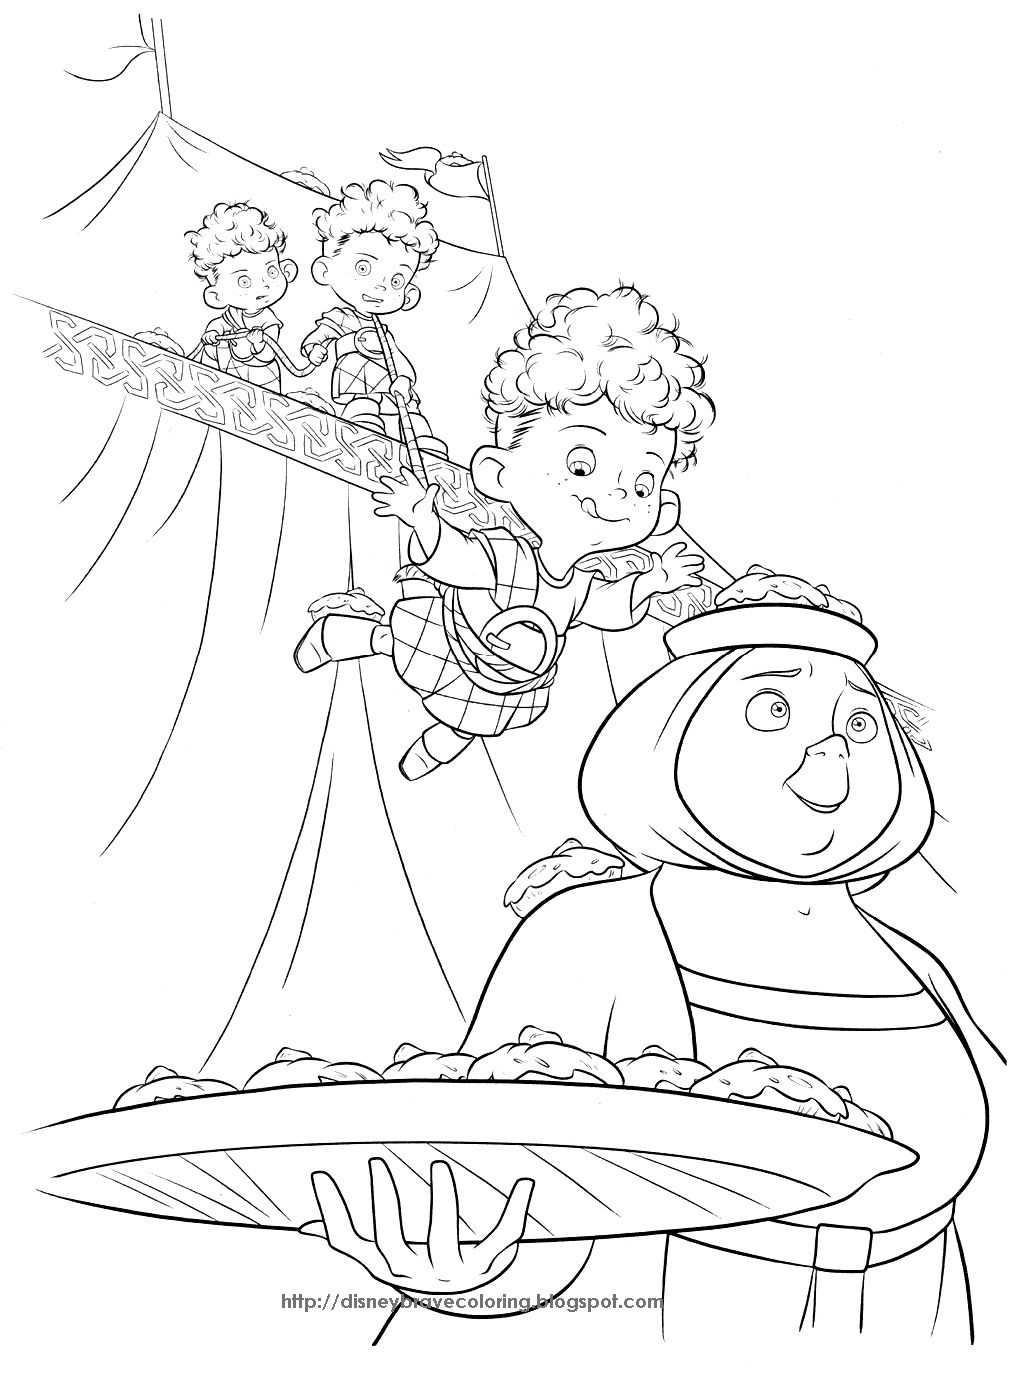 Brave merida coloring pages coloring pages pinterest merida